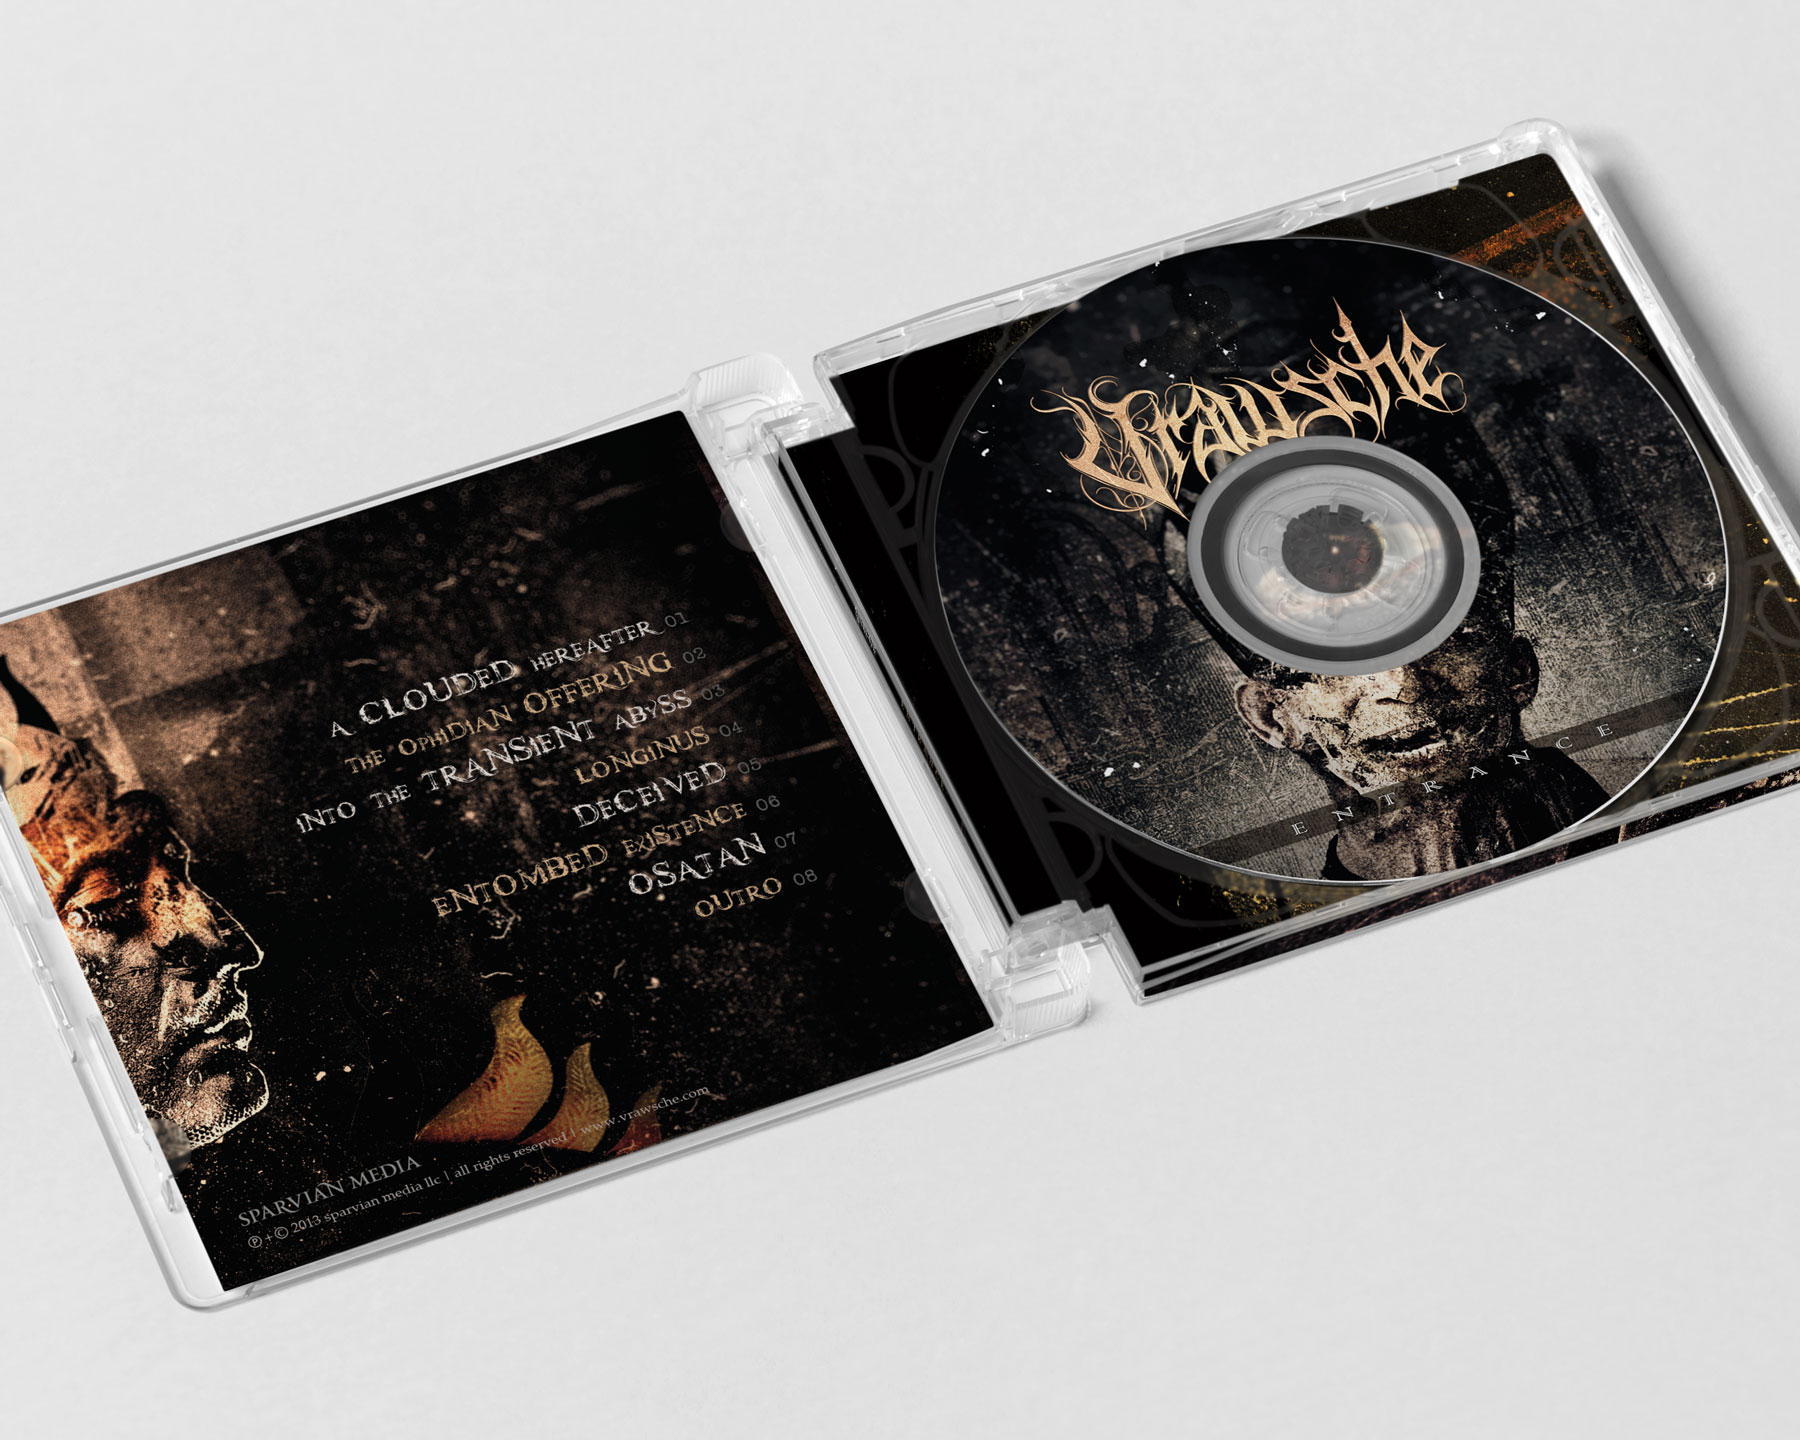 Vrawsche Entrance CD Design